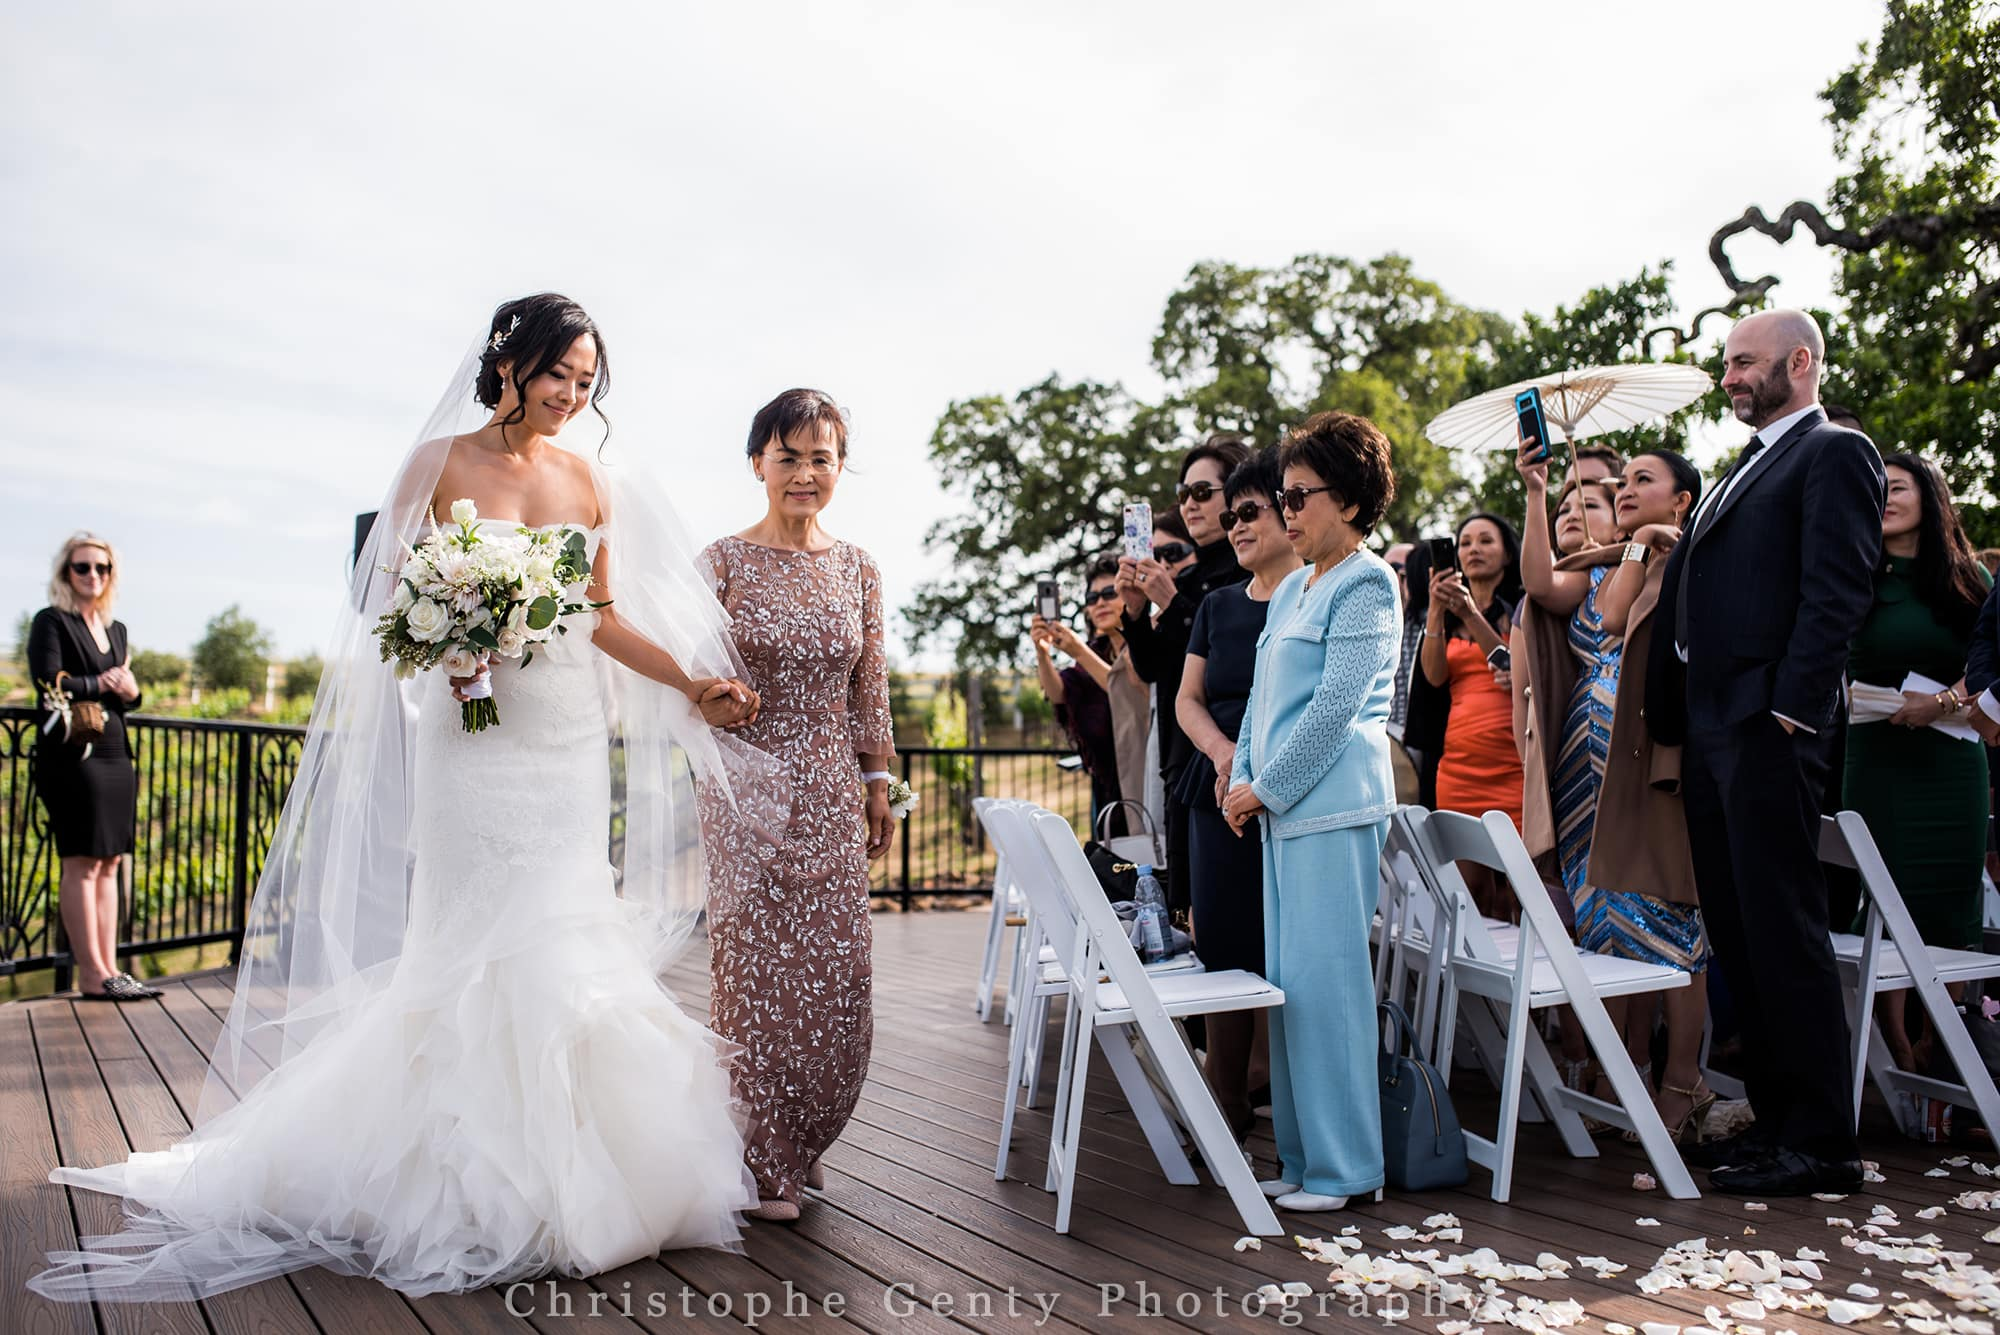 Wedding Photography at The Meritage, Napa, Ca